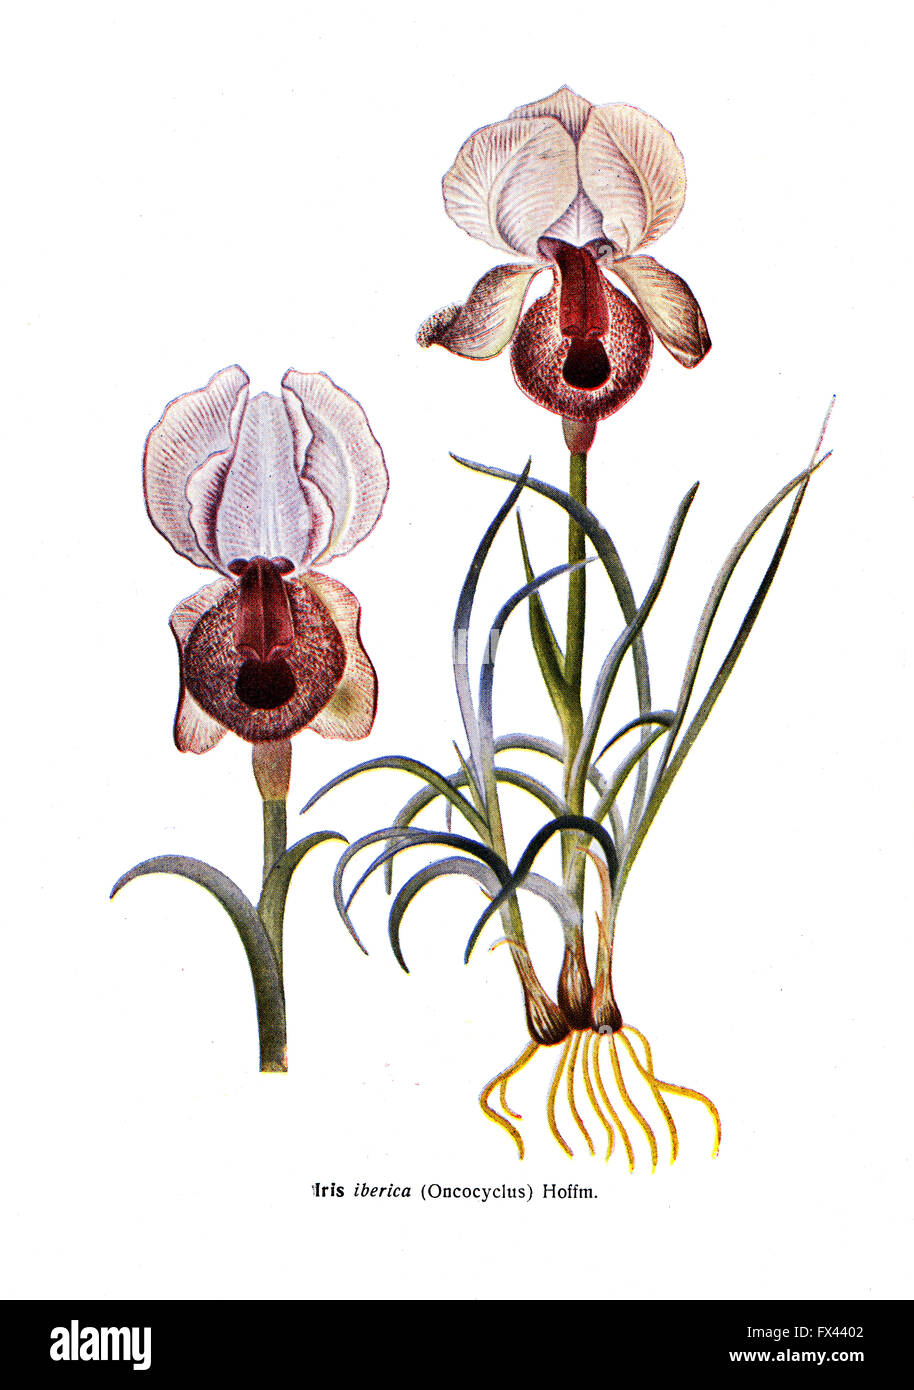 Iris iberica - Oncocyclus - Hoffm - an illustration from the book 'Species of flowers bulbes of the Soviet Union', - Stock Image